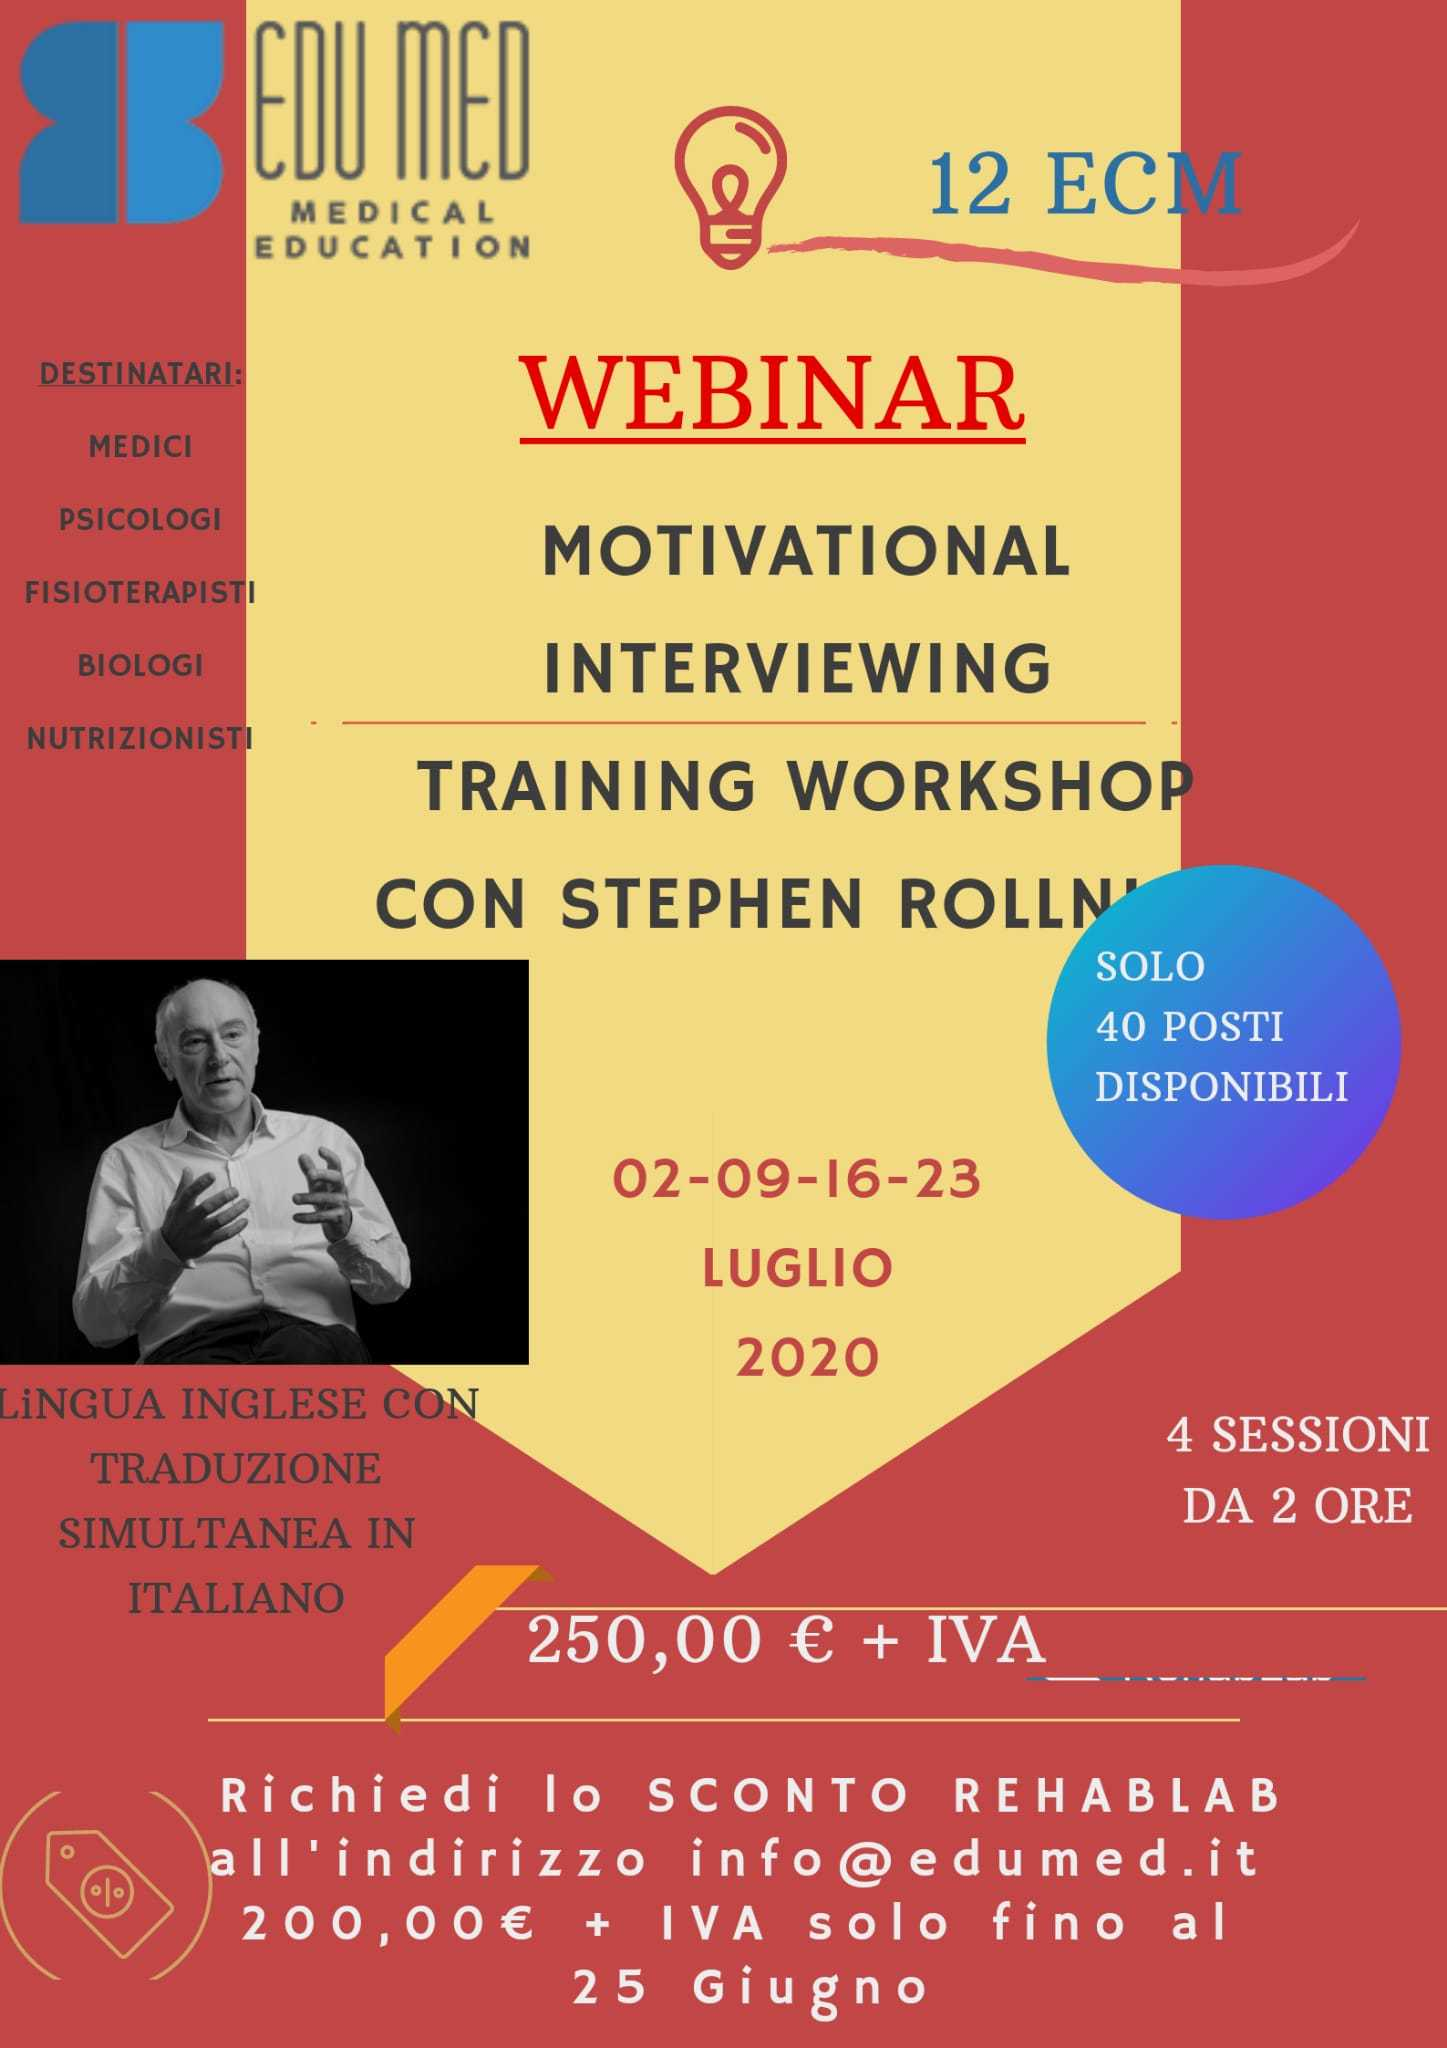 MOTIVATIONAL INTERVIEWING - TRAINING WORKSHOP